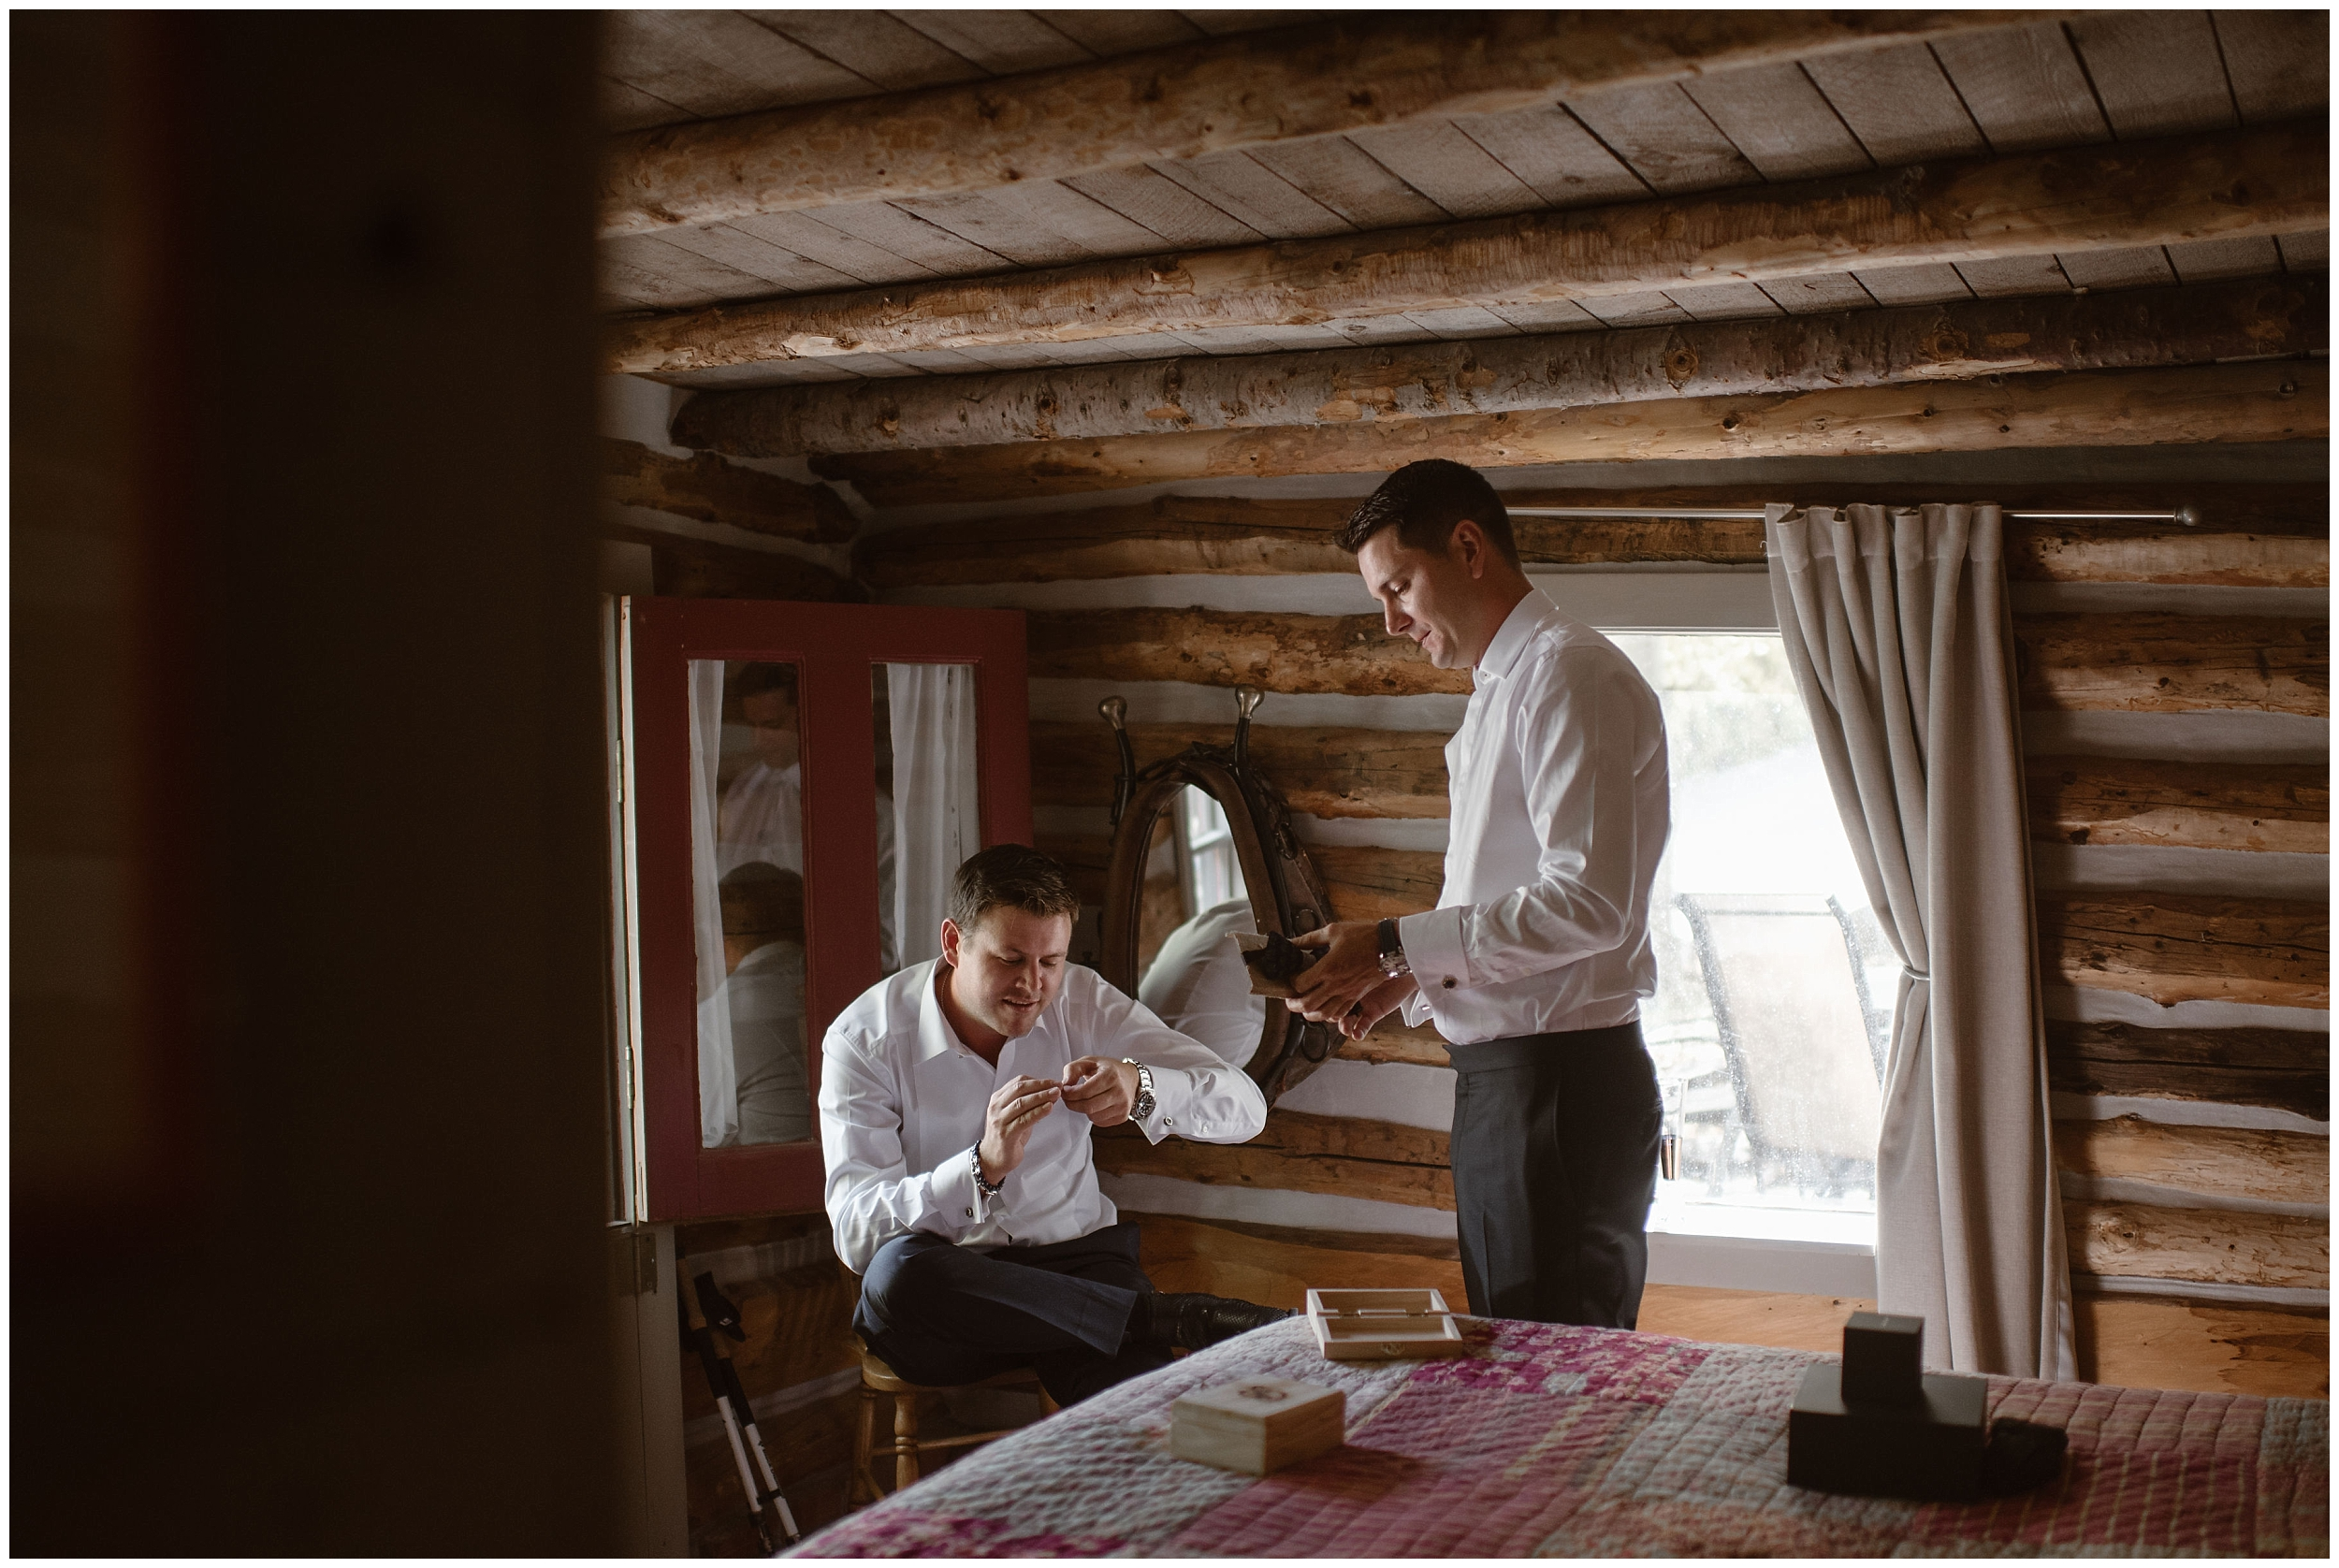 The two grooms, Brian and Ernie, take a moment together in their VRBO as they help each other get ready for their Colorado destination wedding. They both decided to include some of their unique eloping ideas by implementing fun details, like their black diamond cuff links, into their elopement pictures.